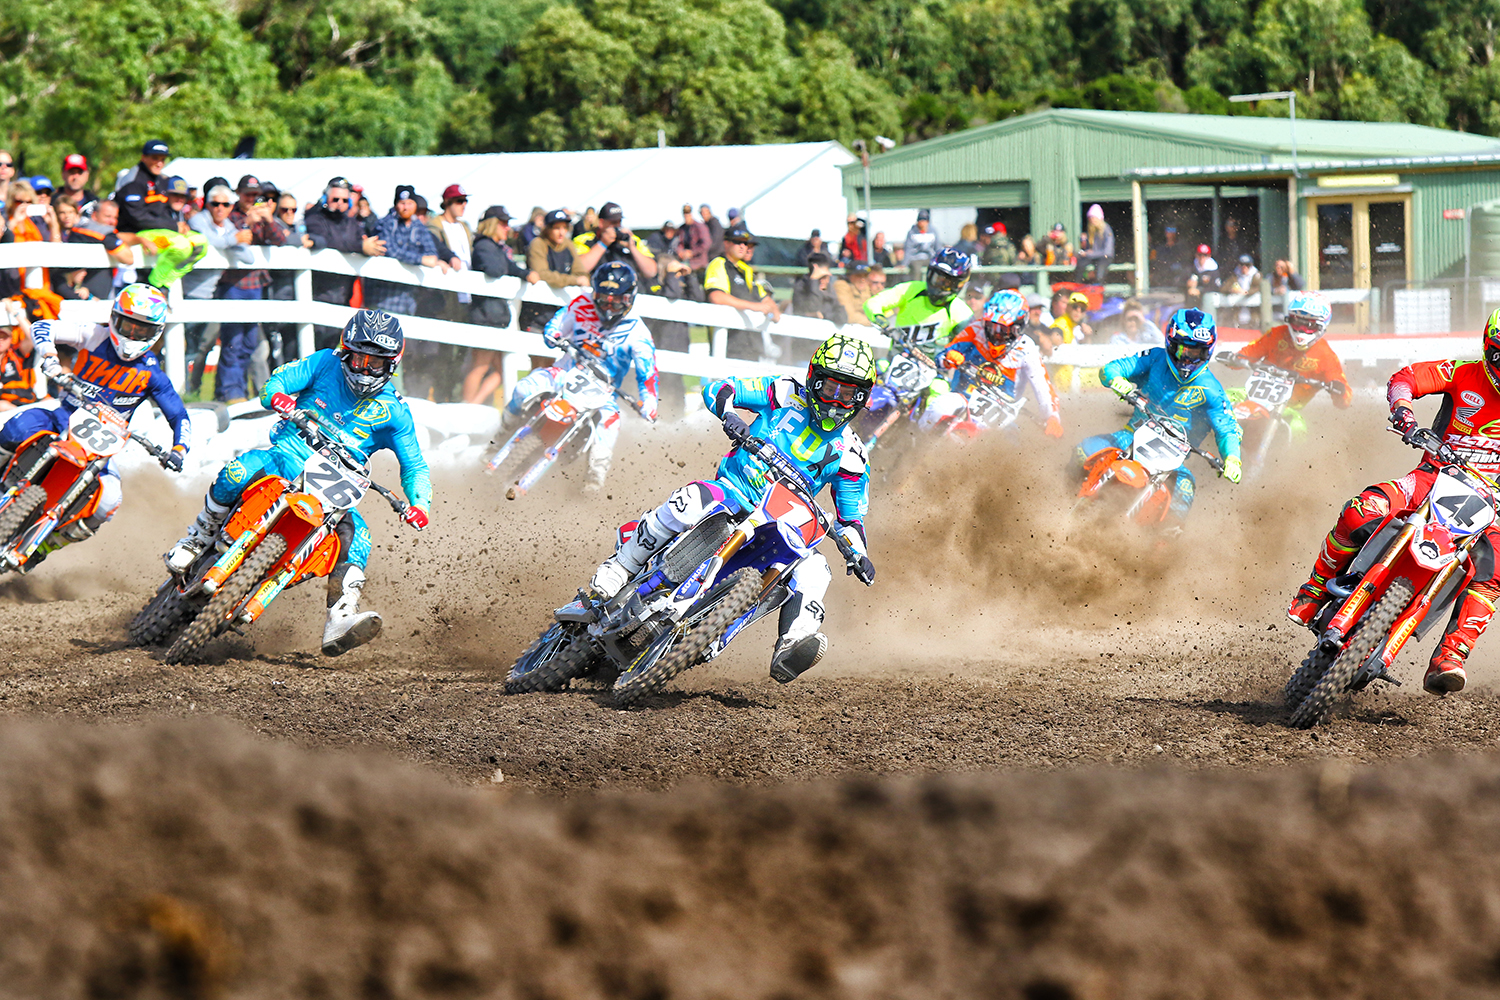 PHOTO GALLERY: MOTUL MX NATIONALS RD 1